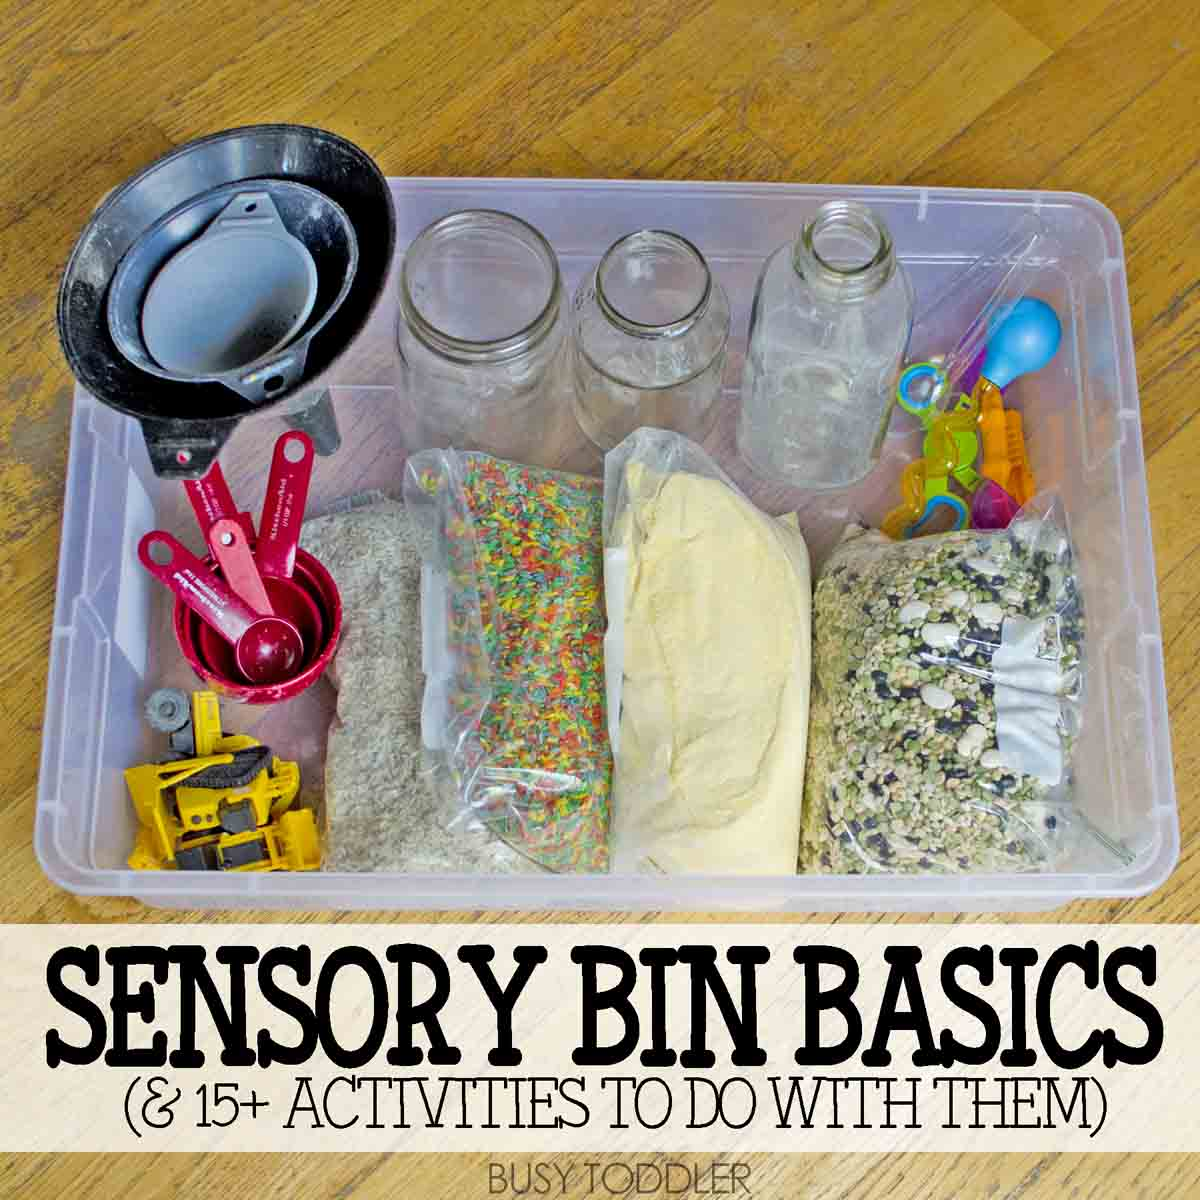 Sensory Bin Basics: What You Need to Have